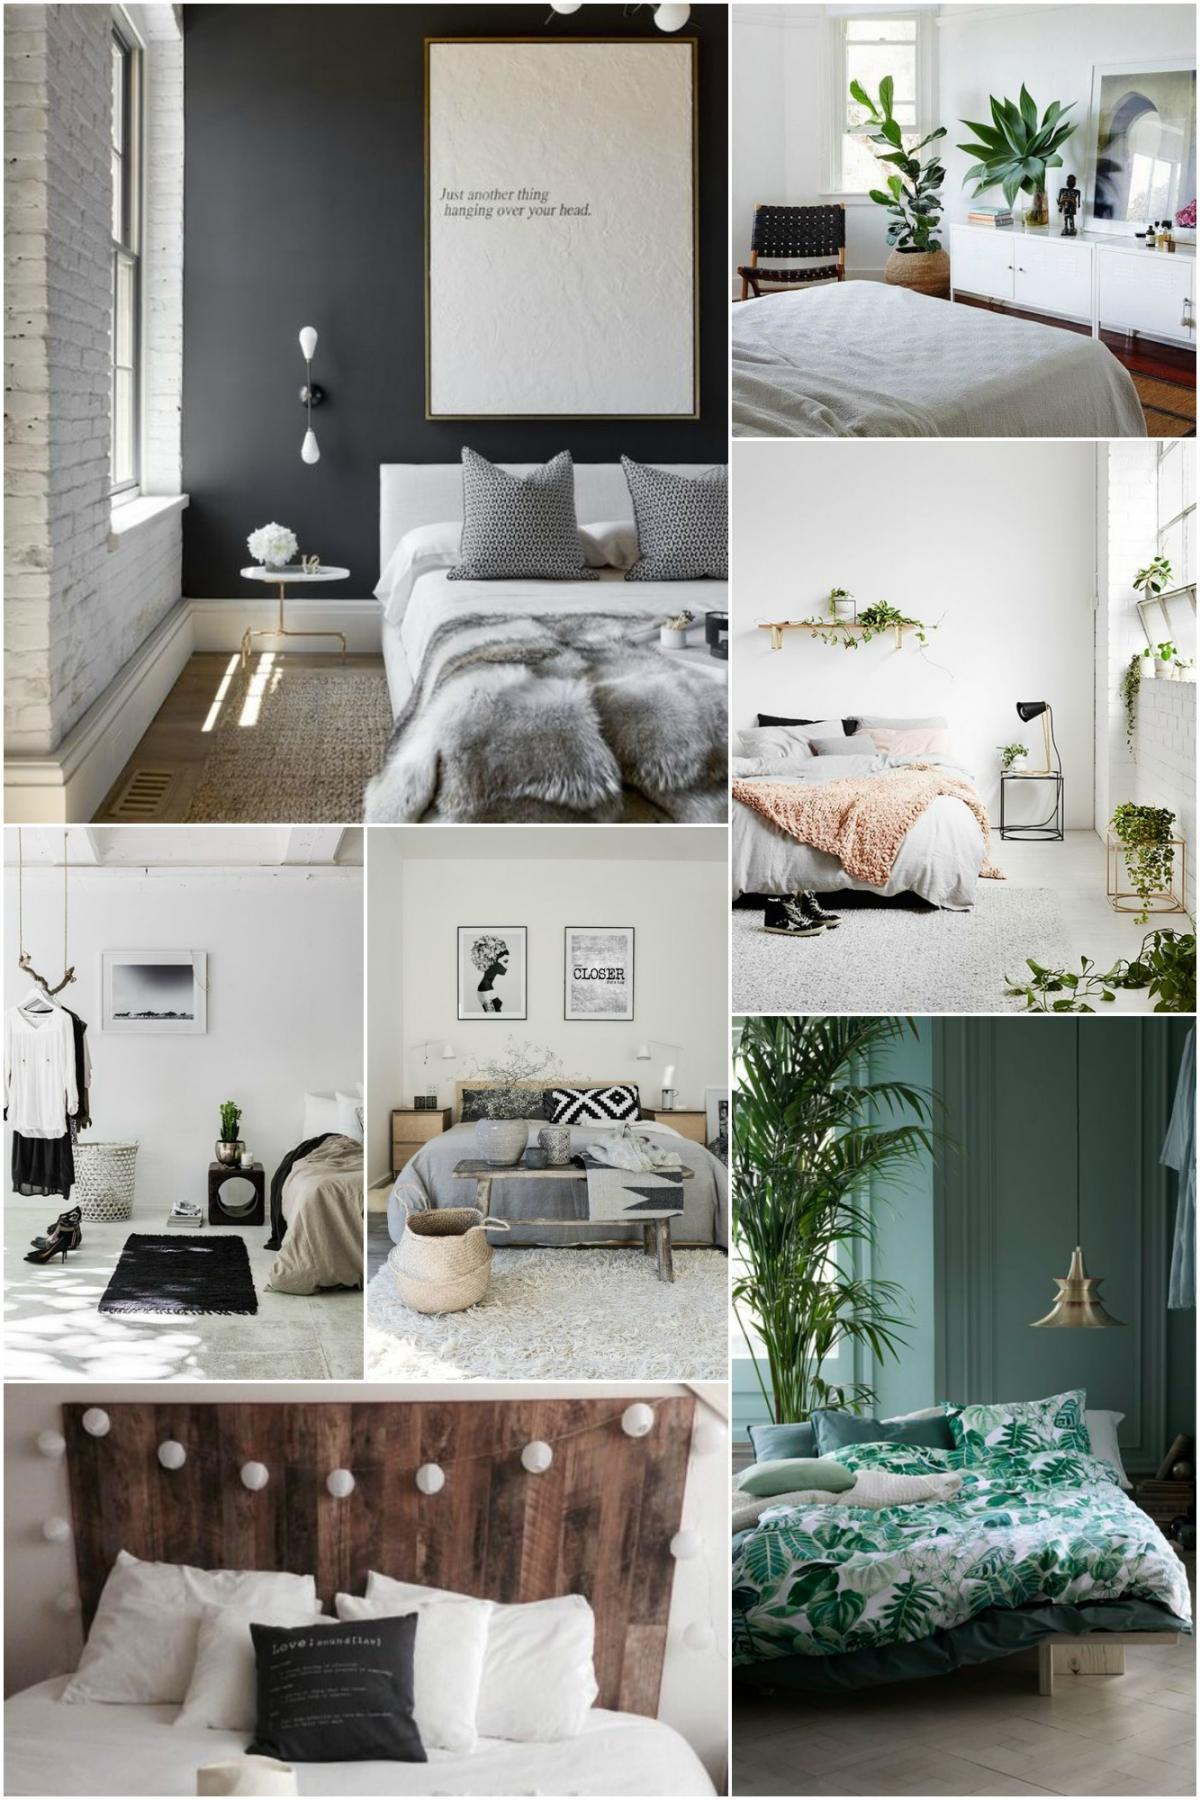 Home Trend- LA Cool Bedroom Mood Board